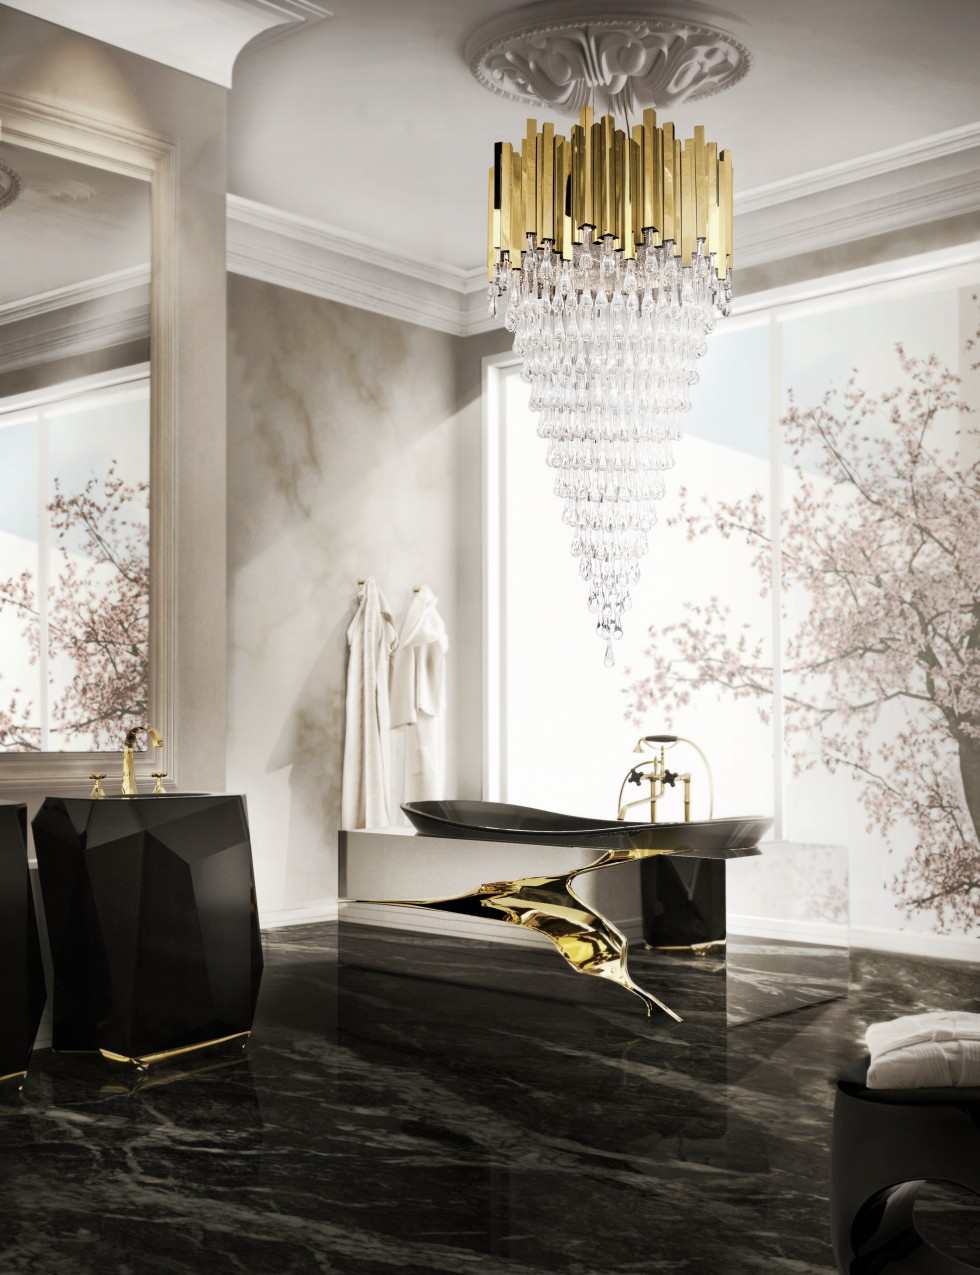 trump-chandeleir.901 Salone del Mobile Interior Design Inspirations from Salone del Mobile 2016 trump chandeleir